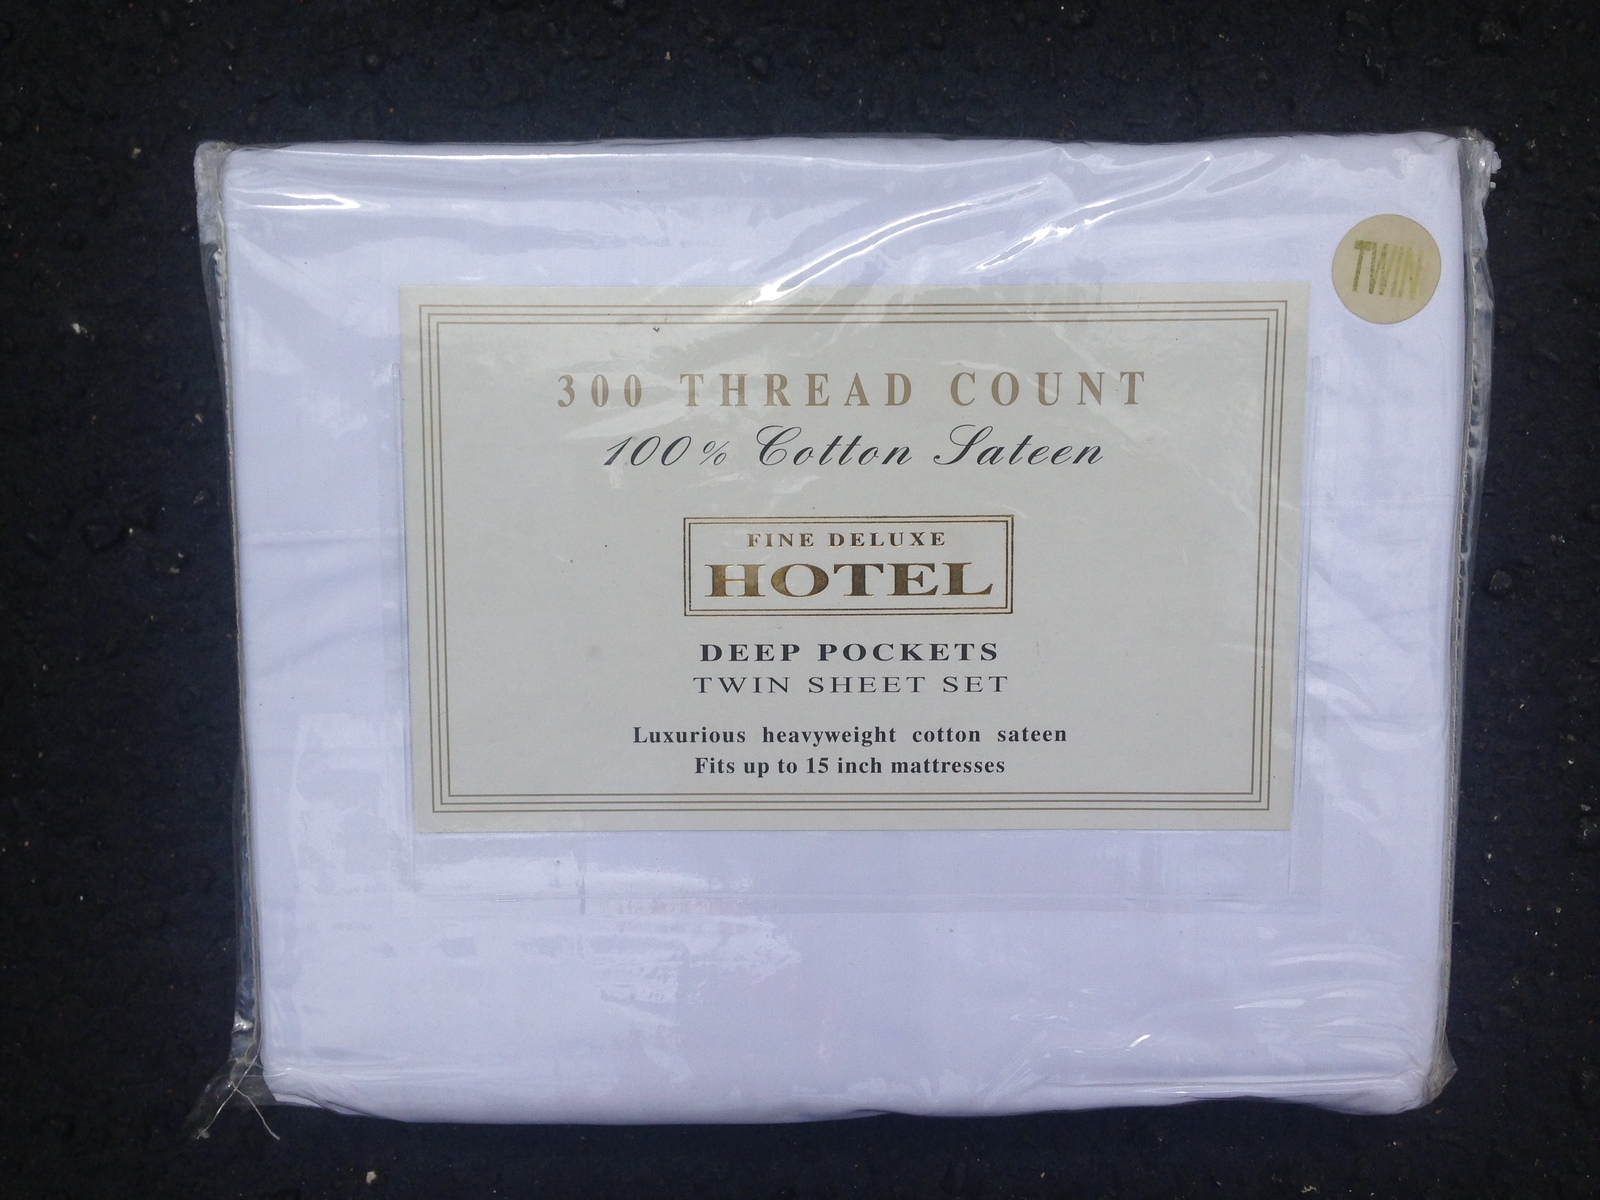 Fine deluxe hotel full sheet set   white  2